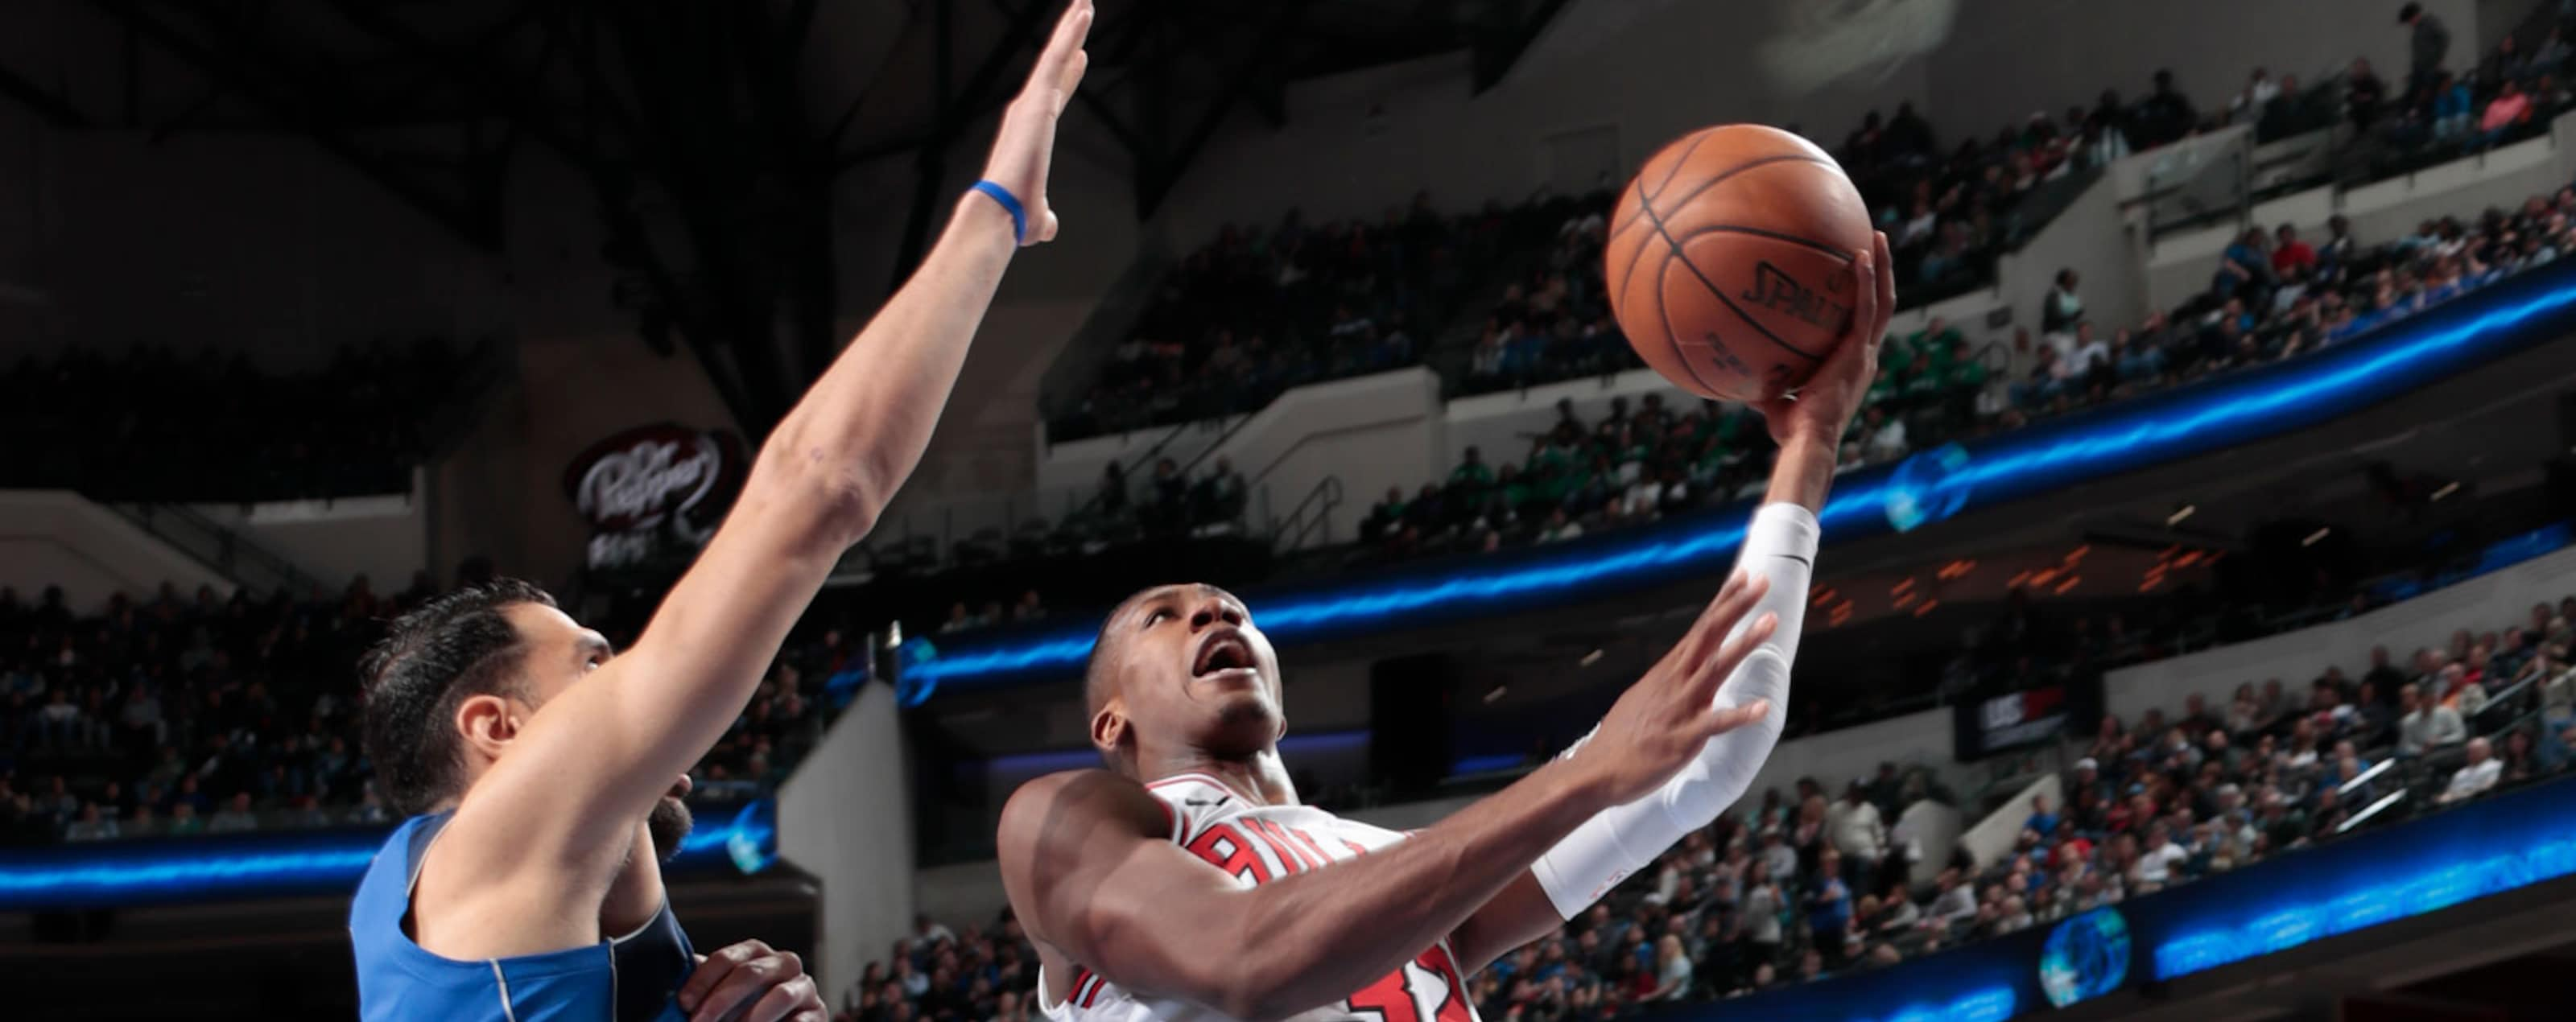 Kris Dunn #32 of the Chicago Bulls shoots a lay up against the Dallas Mavericks on January 5, 2018 at the American Airlines Center in Dallas, Texas.